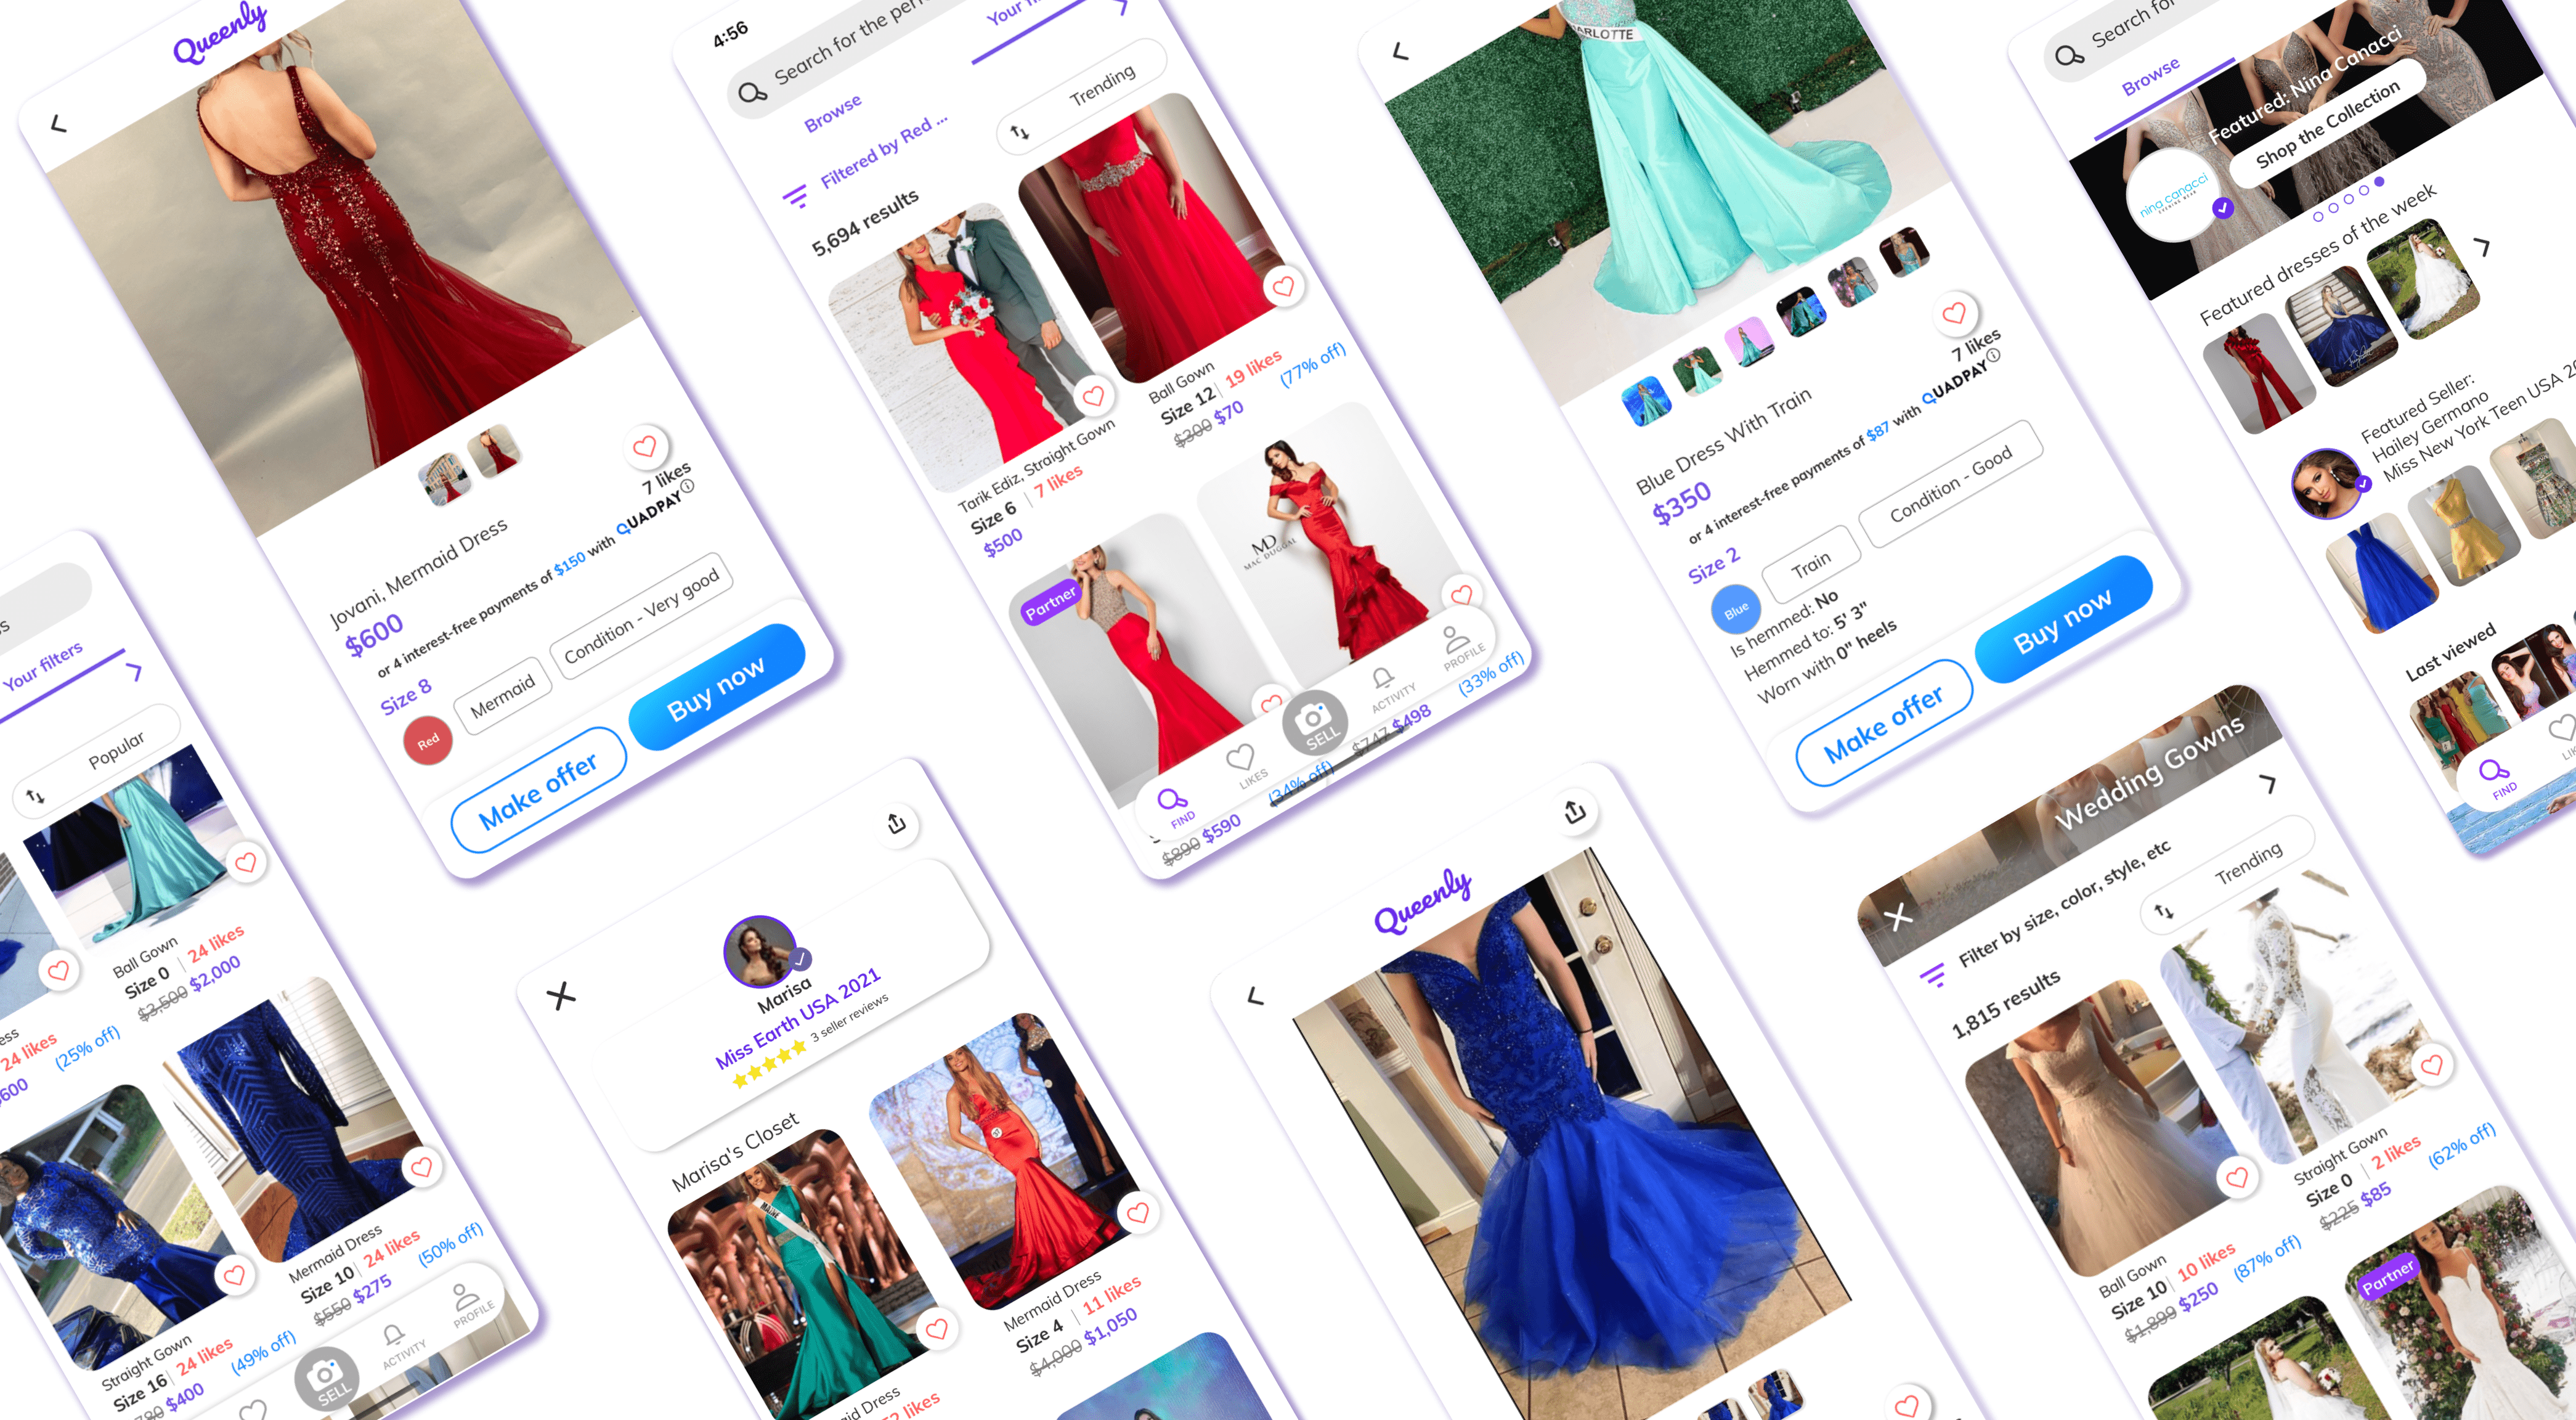 YC-backed Queenly launches a marketplace for formalwear – TechCrunch screenshots no logo